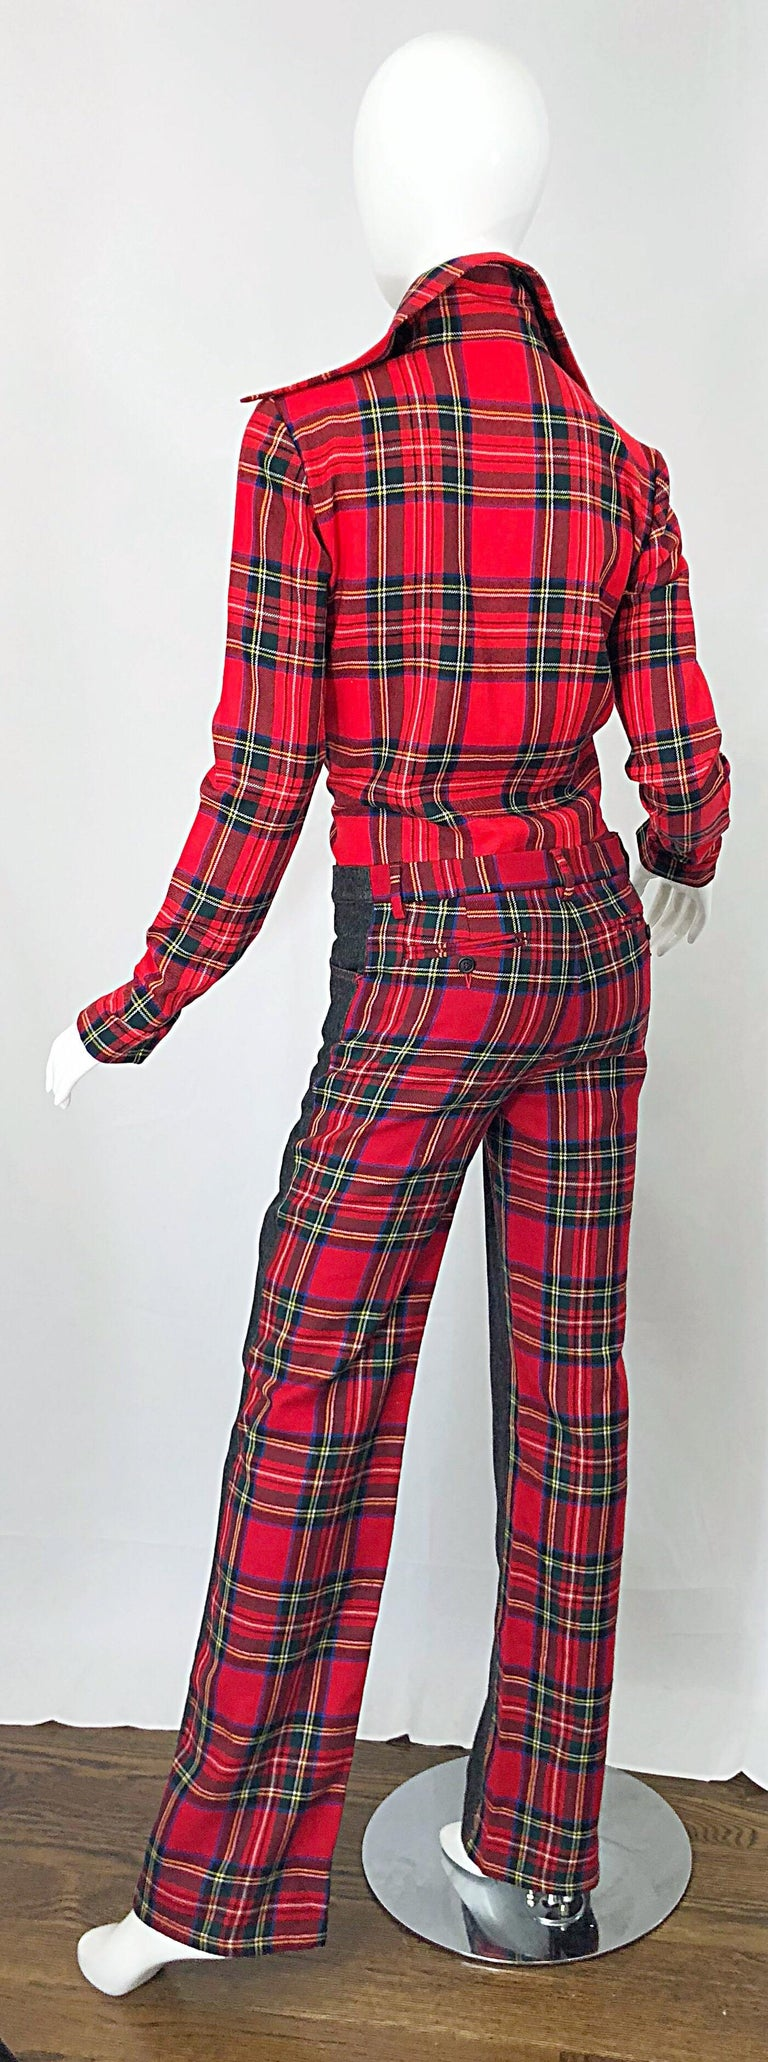 Rare 1990s Dolce & Gabbana Red Tartan Plaid Wool + Denim Flared Jeans and Shirt For Sale 1